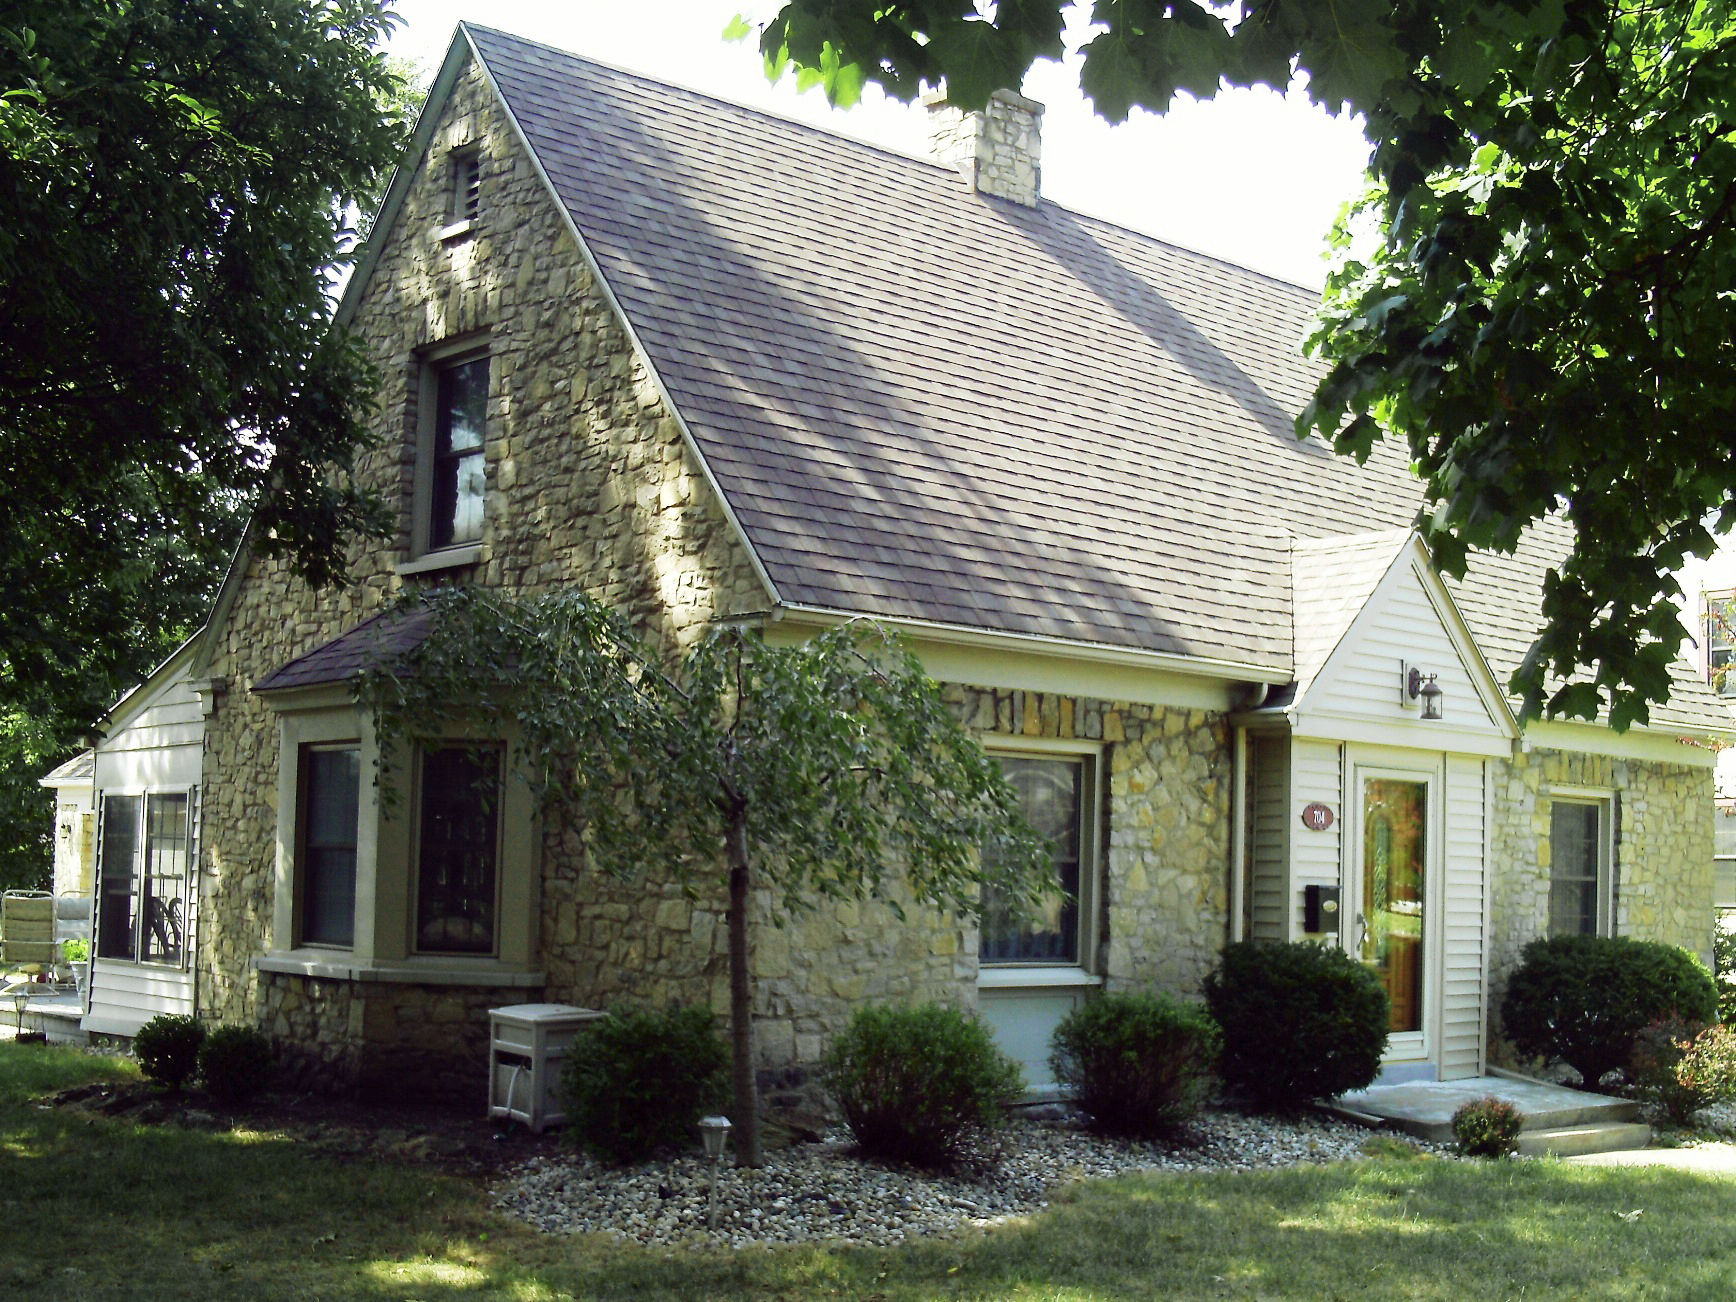 Homes tour to feature old new of neighborhood the blade for Features of old houses